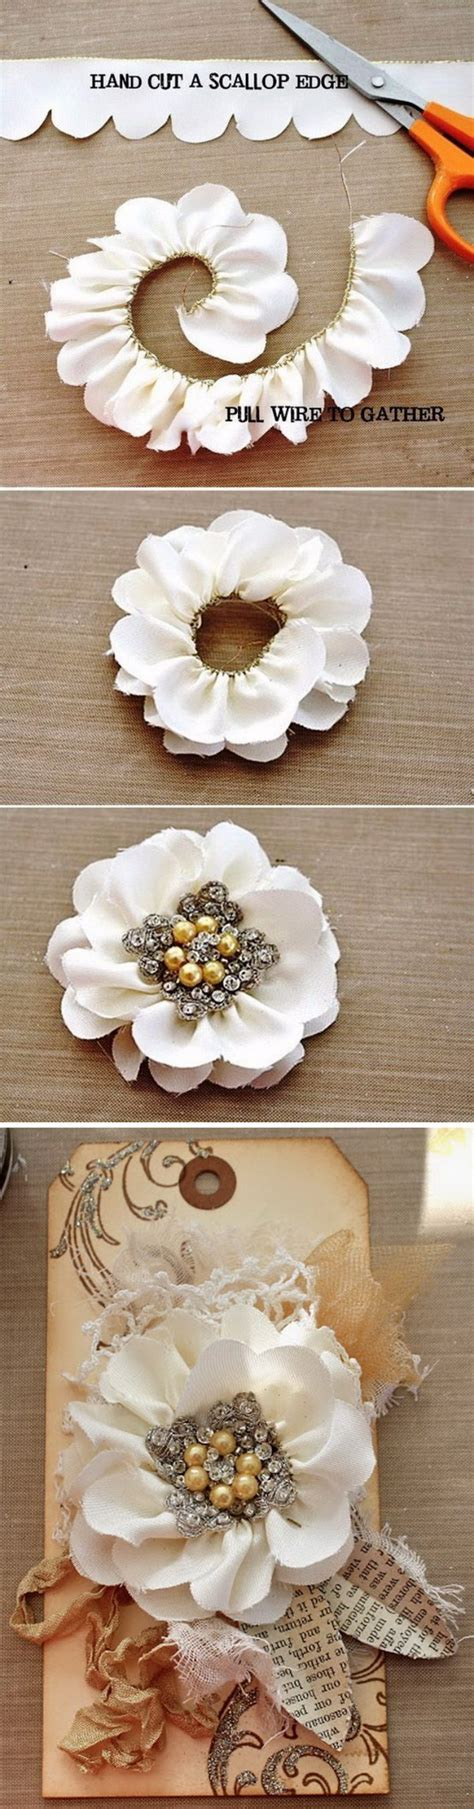 shabby chic wedding ideas diy 55 awesome shabby chic decor diy ideas projects 2017